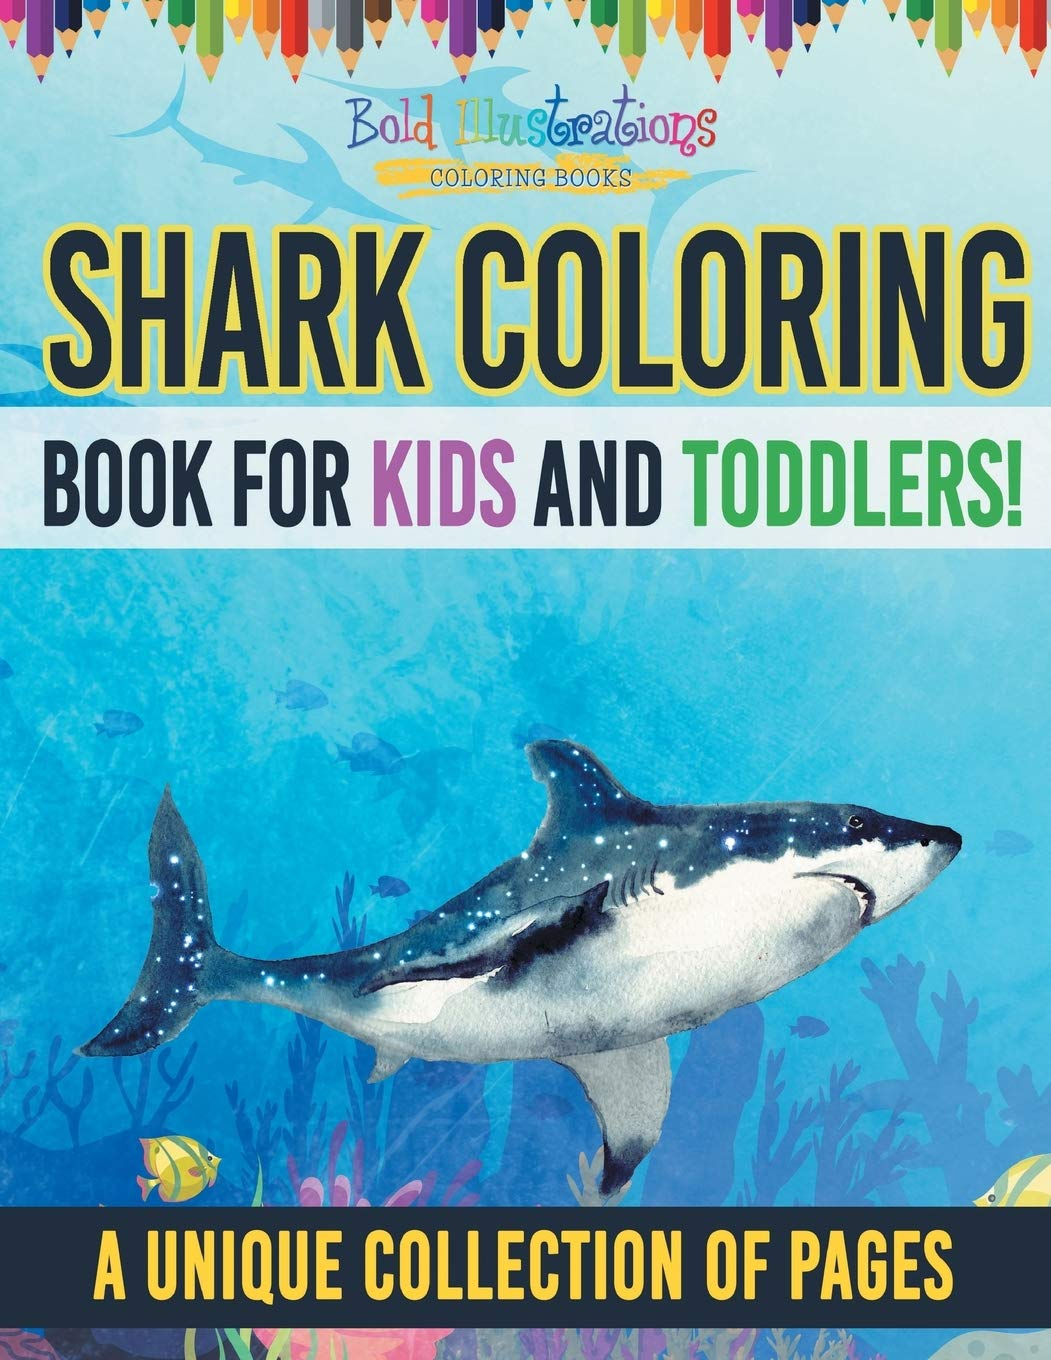 Shark Coloring Book For Kids And Toddlers A Unique Collection Of Pages Illustrations Bold 9781641938983 Amazon Com Books